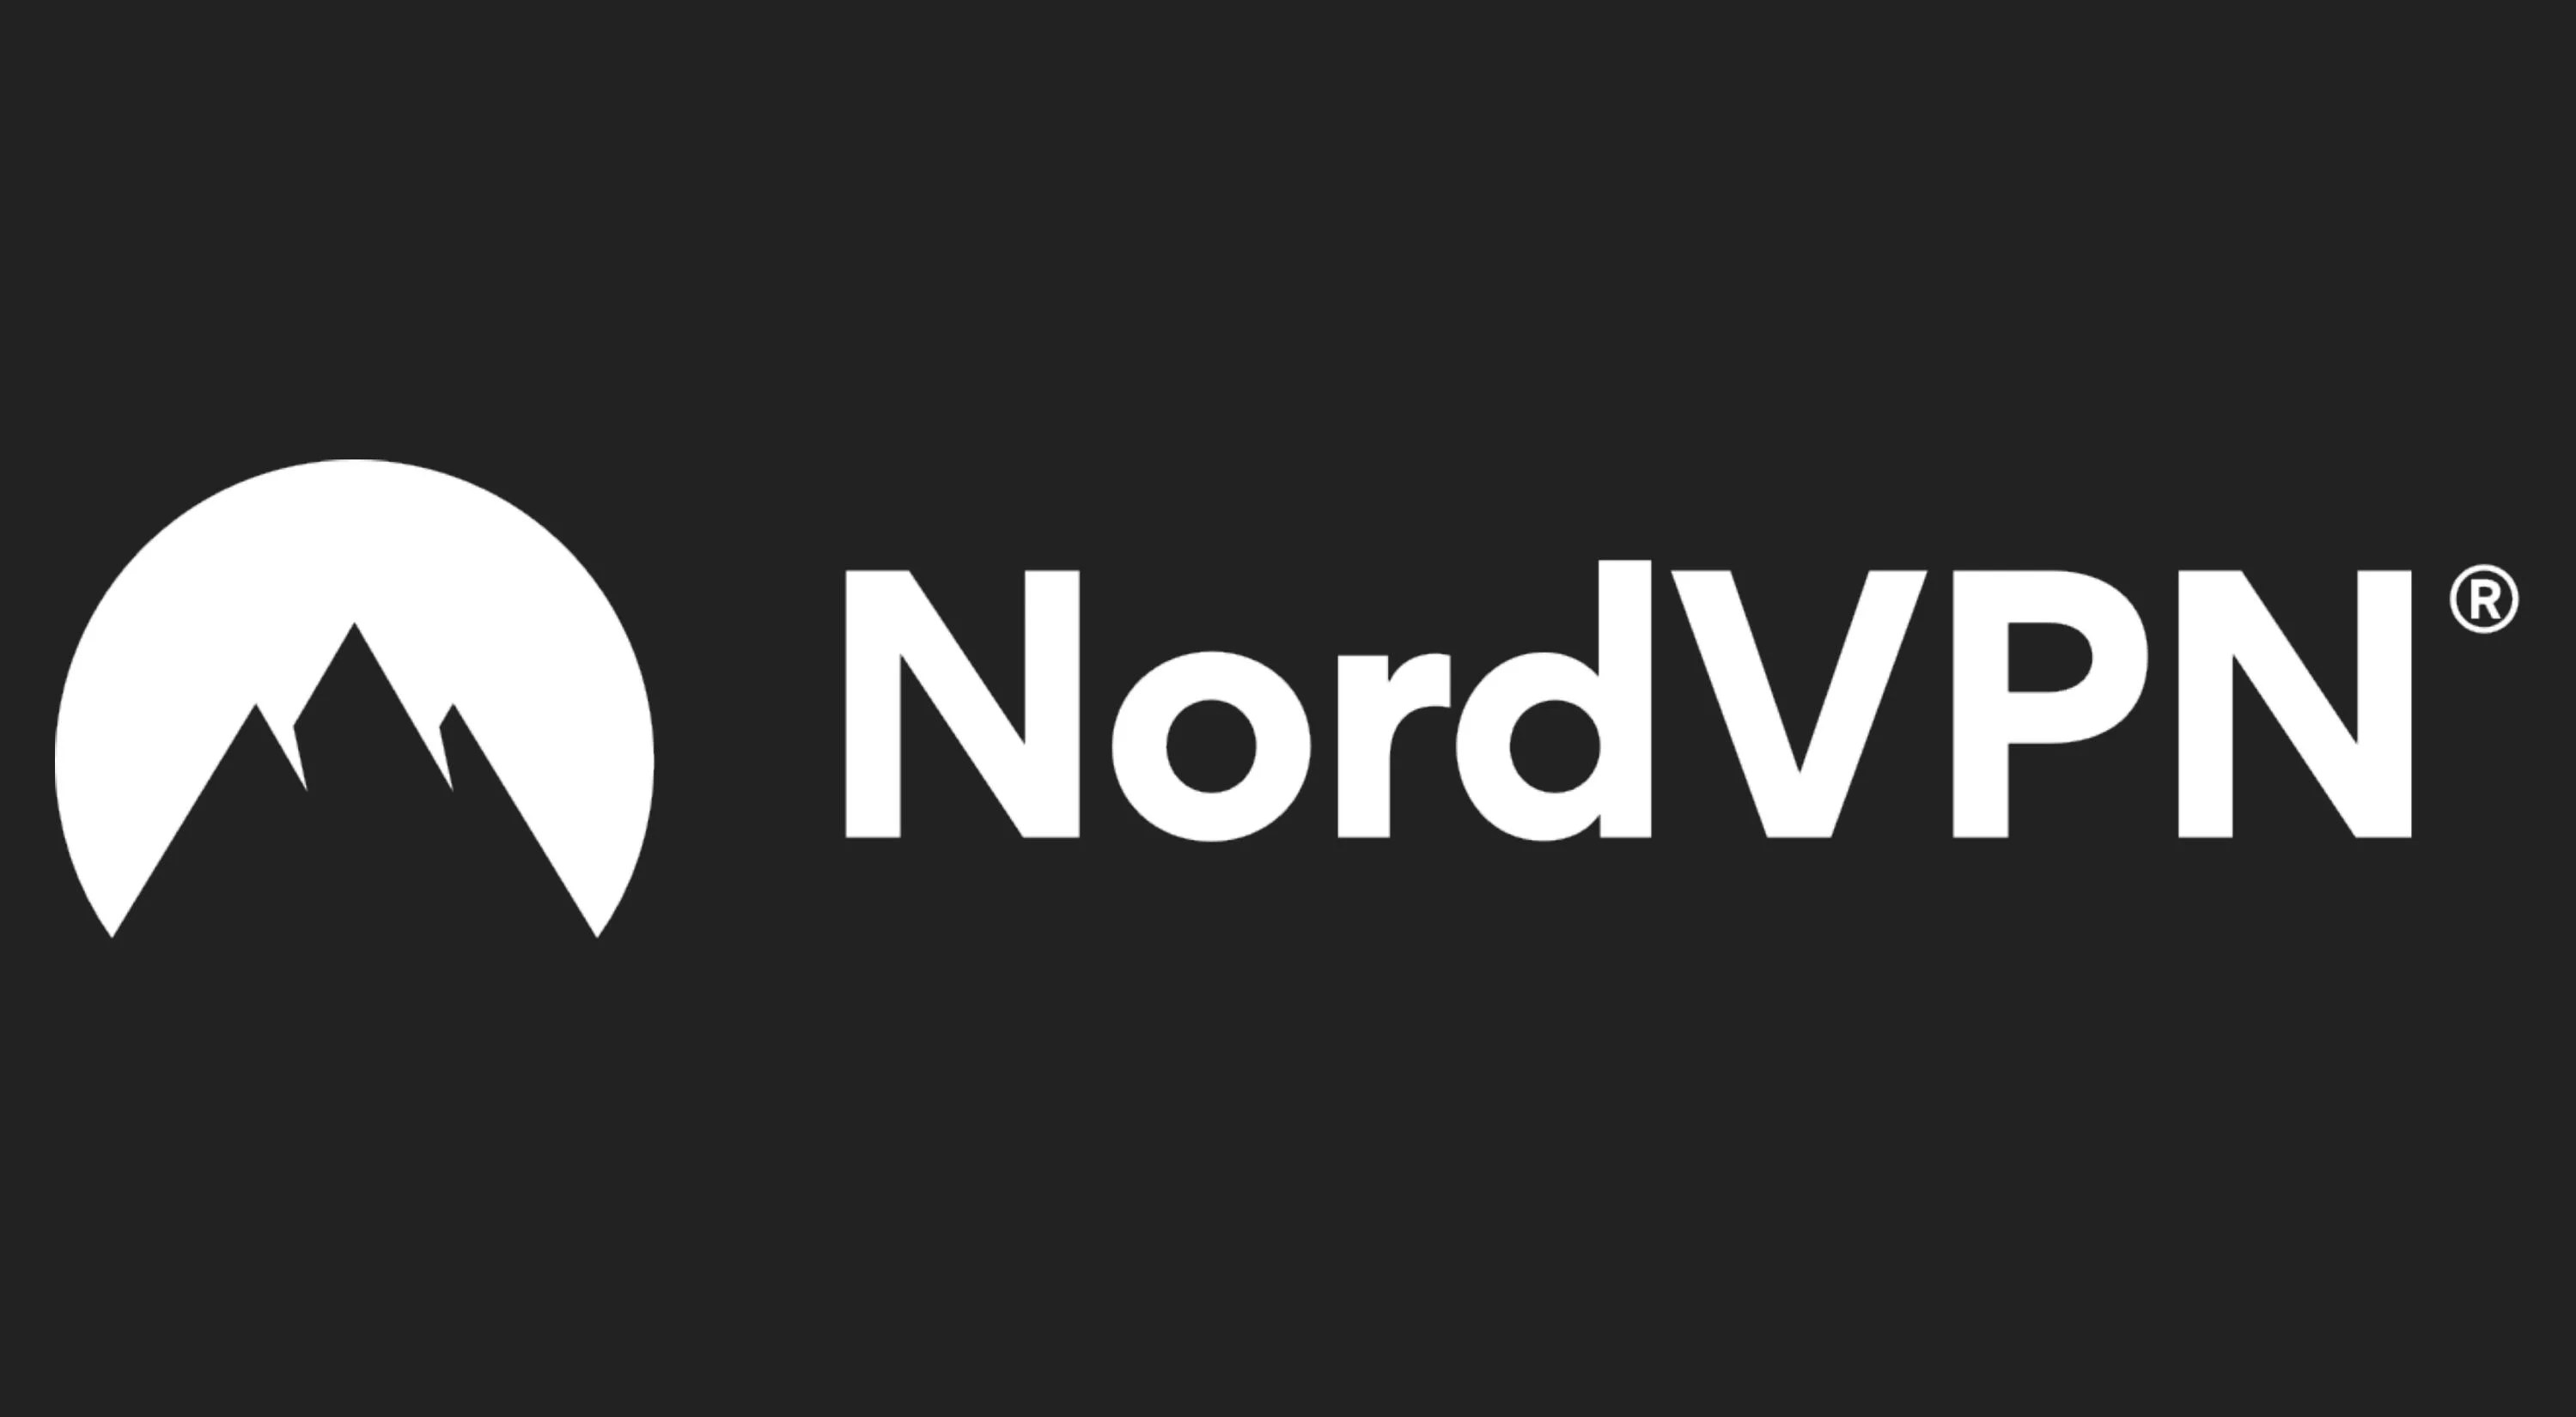 Nord VPN Accounts Give Away – Sep 24 2019